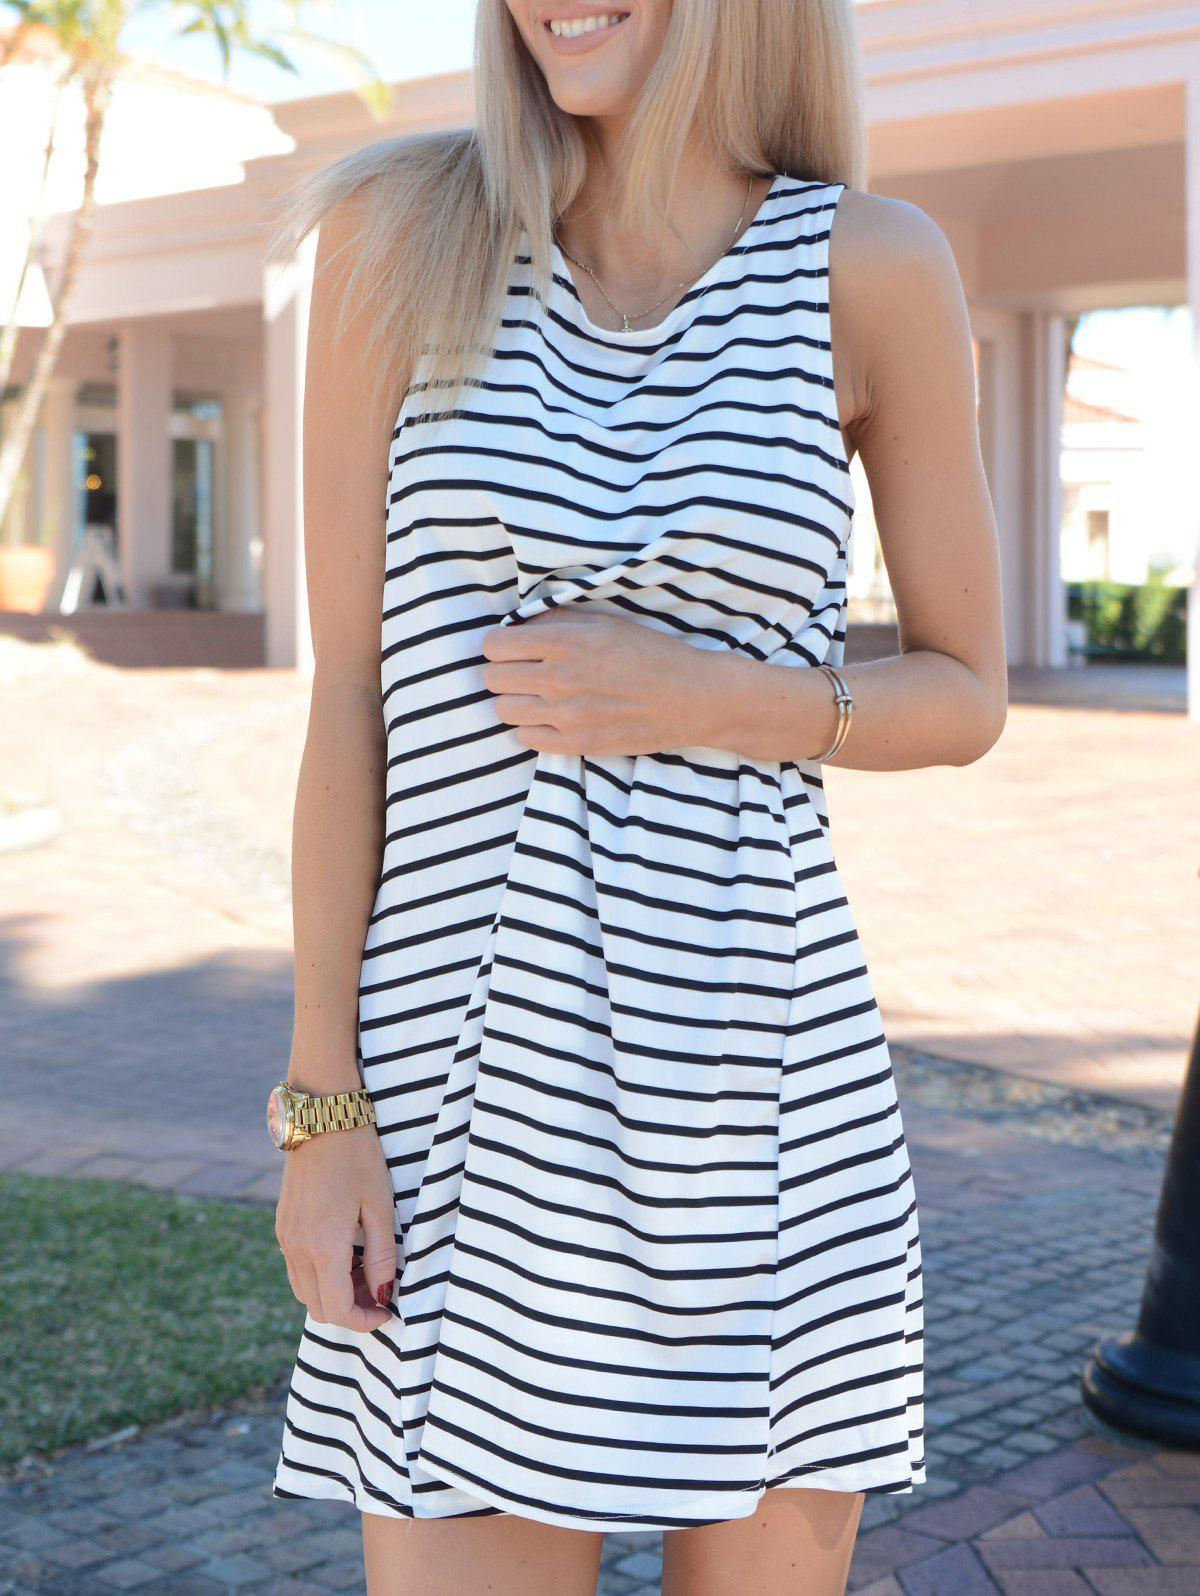 Tunic White Black Sleeveless Striped DressWOMEN<br><br>Size: L; Color: WHITE AND BLACK; Style: Casual; Material: Cotton Blend; Silhouette: Straight; Dresses Length: Mini; Neckline: Round Collar; Sleeve Length: Sleeveless; Pattern Type: Striped; With Belt: No; Season: Summer; Weight: 0.350kg; Package Contents: 1 x Dress;